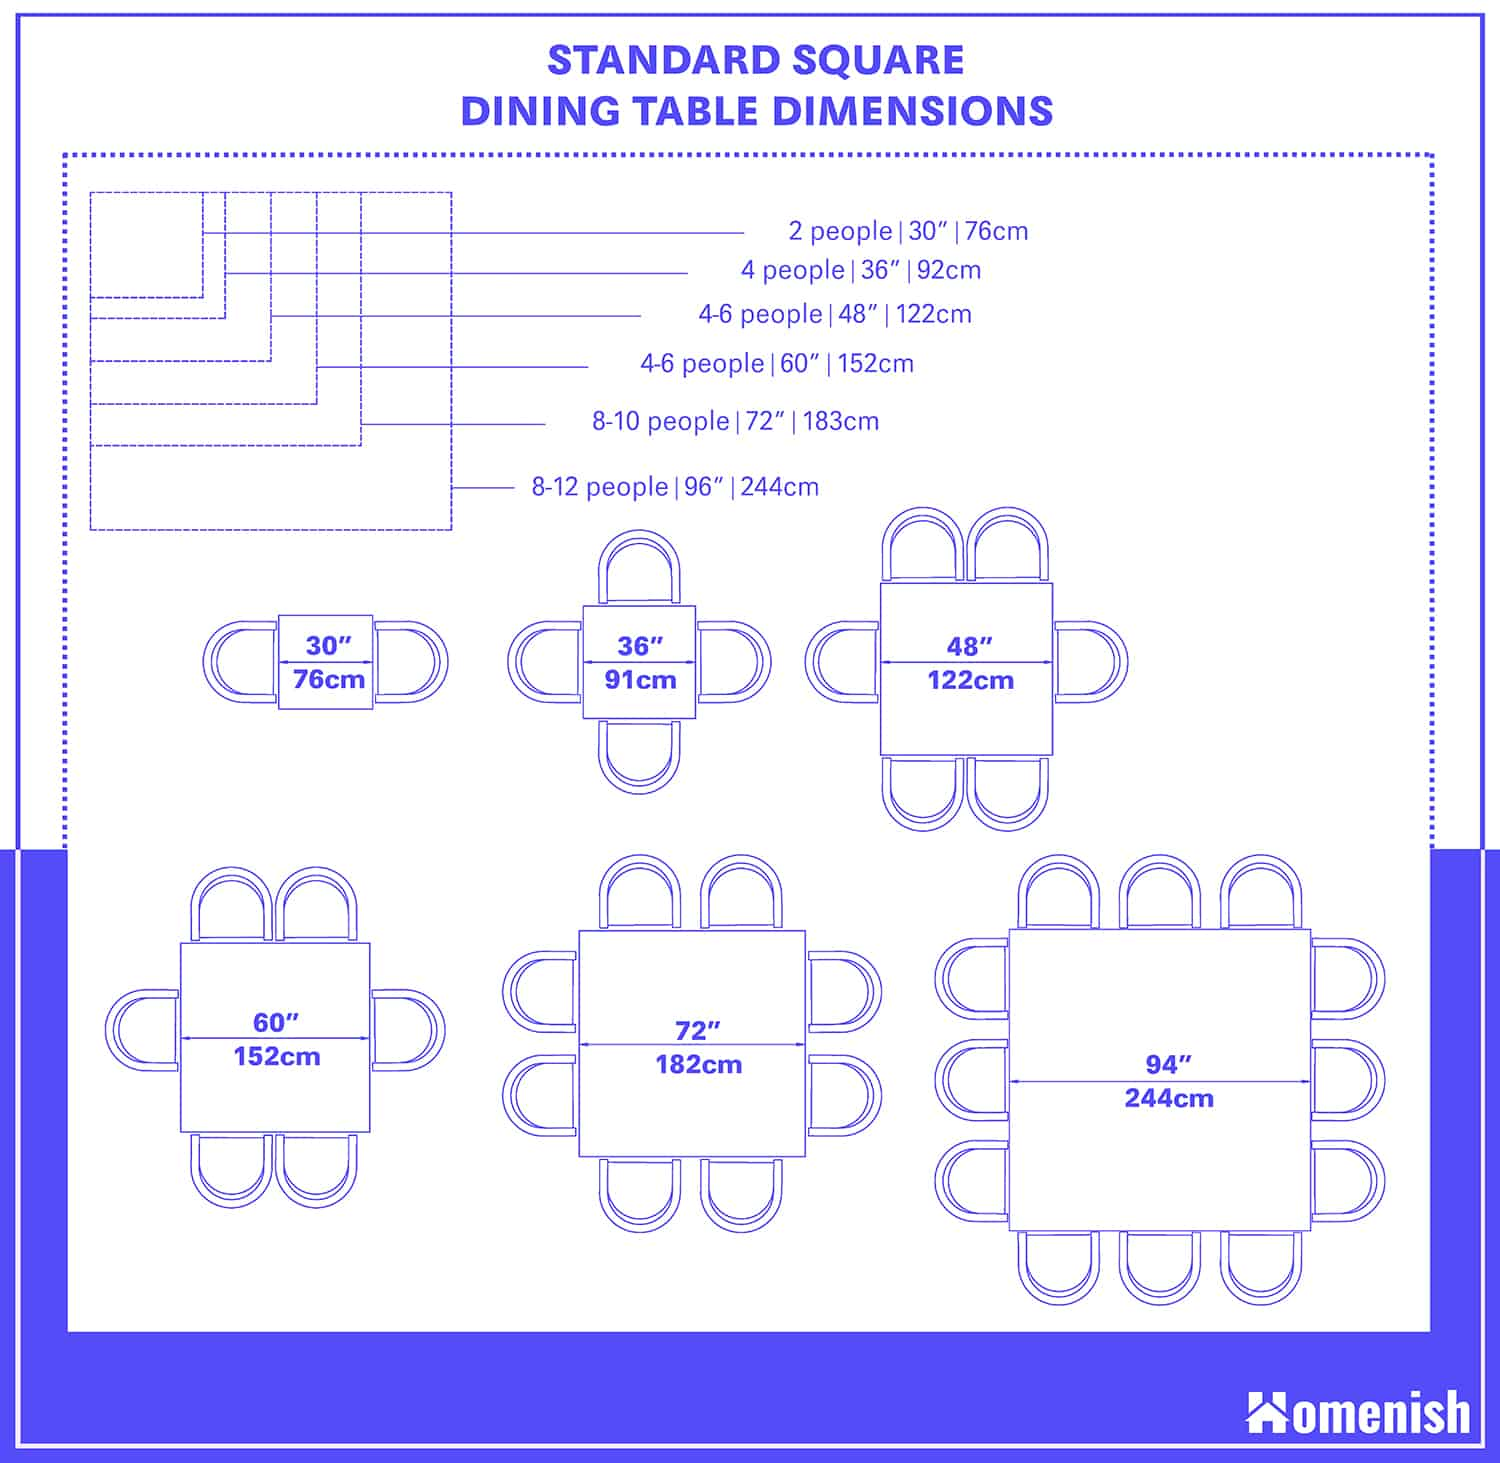 Standard Square Dining Table Dimensions